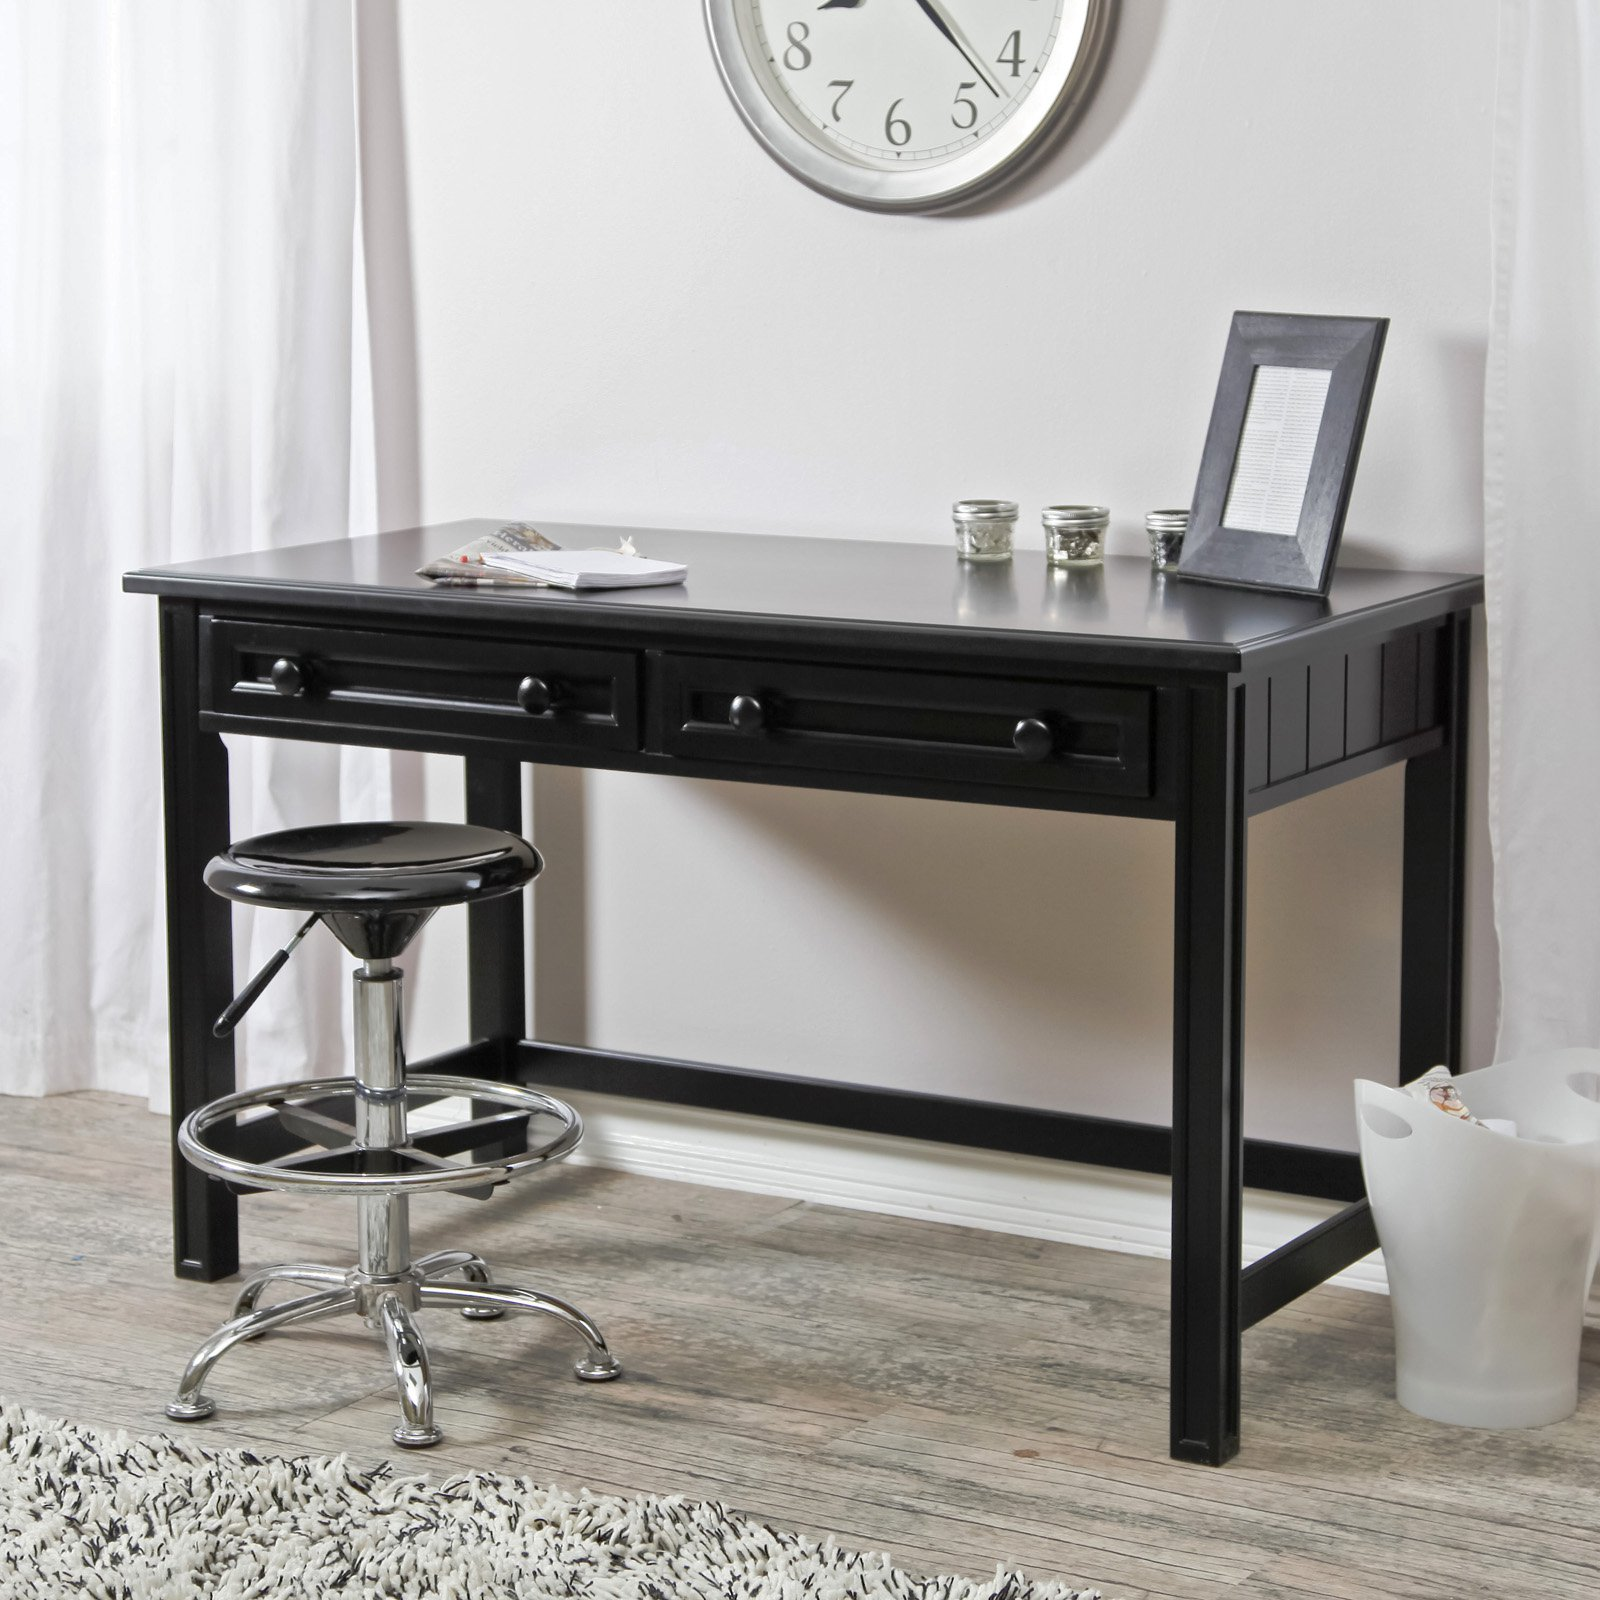 Belham Living Casey Writing Desk - Black